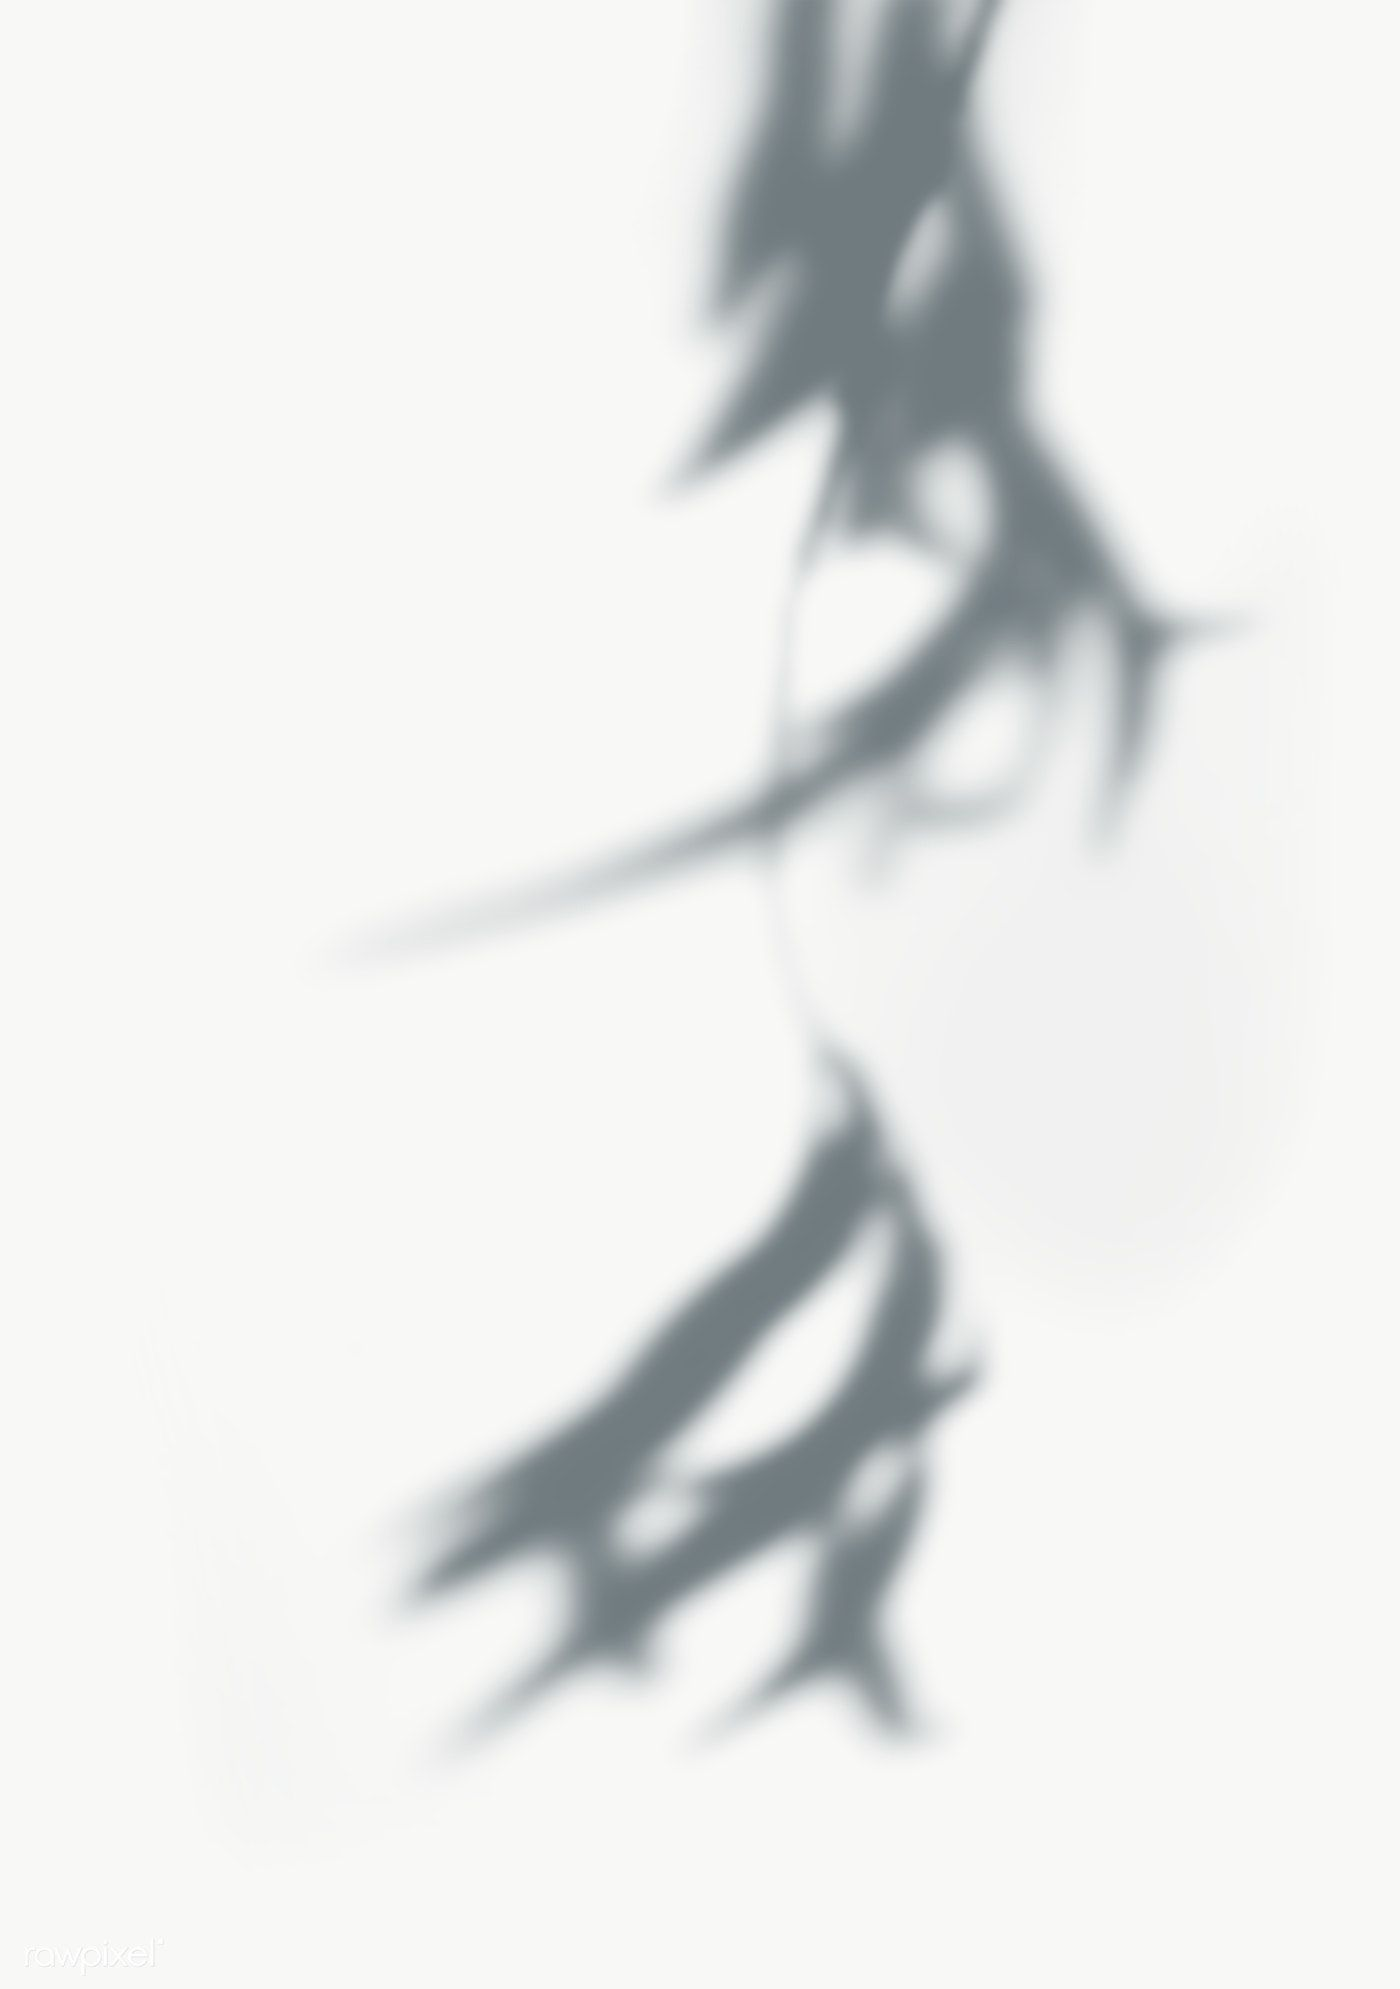 Shadow Of Leaves On A Wall Free Image By Rawpixel Com Shadow Shadow Photography Silhouette Photography